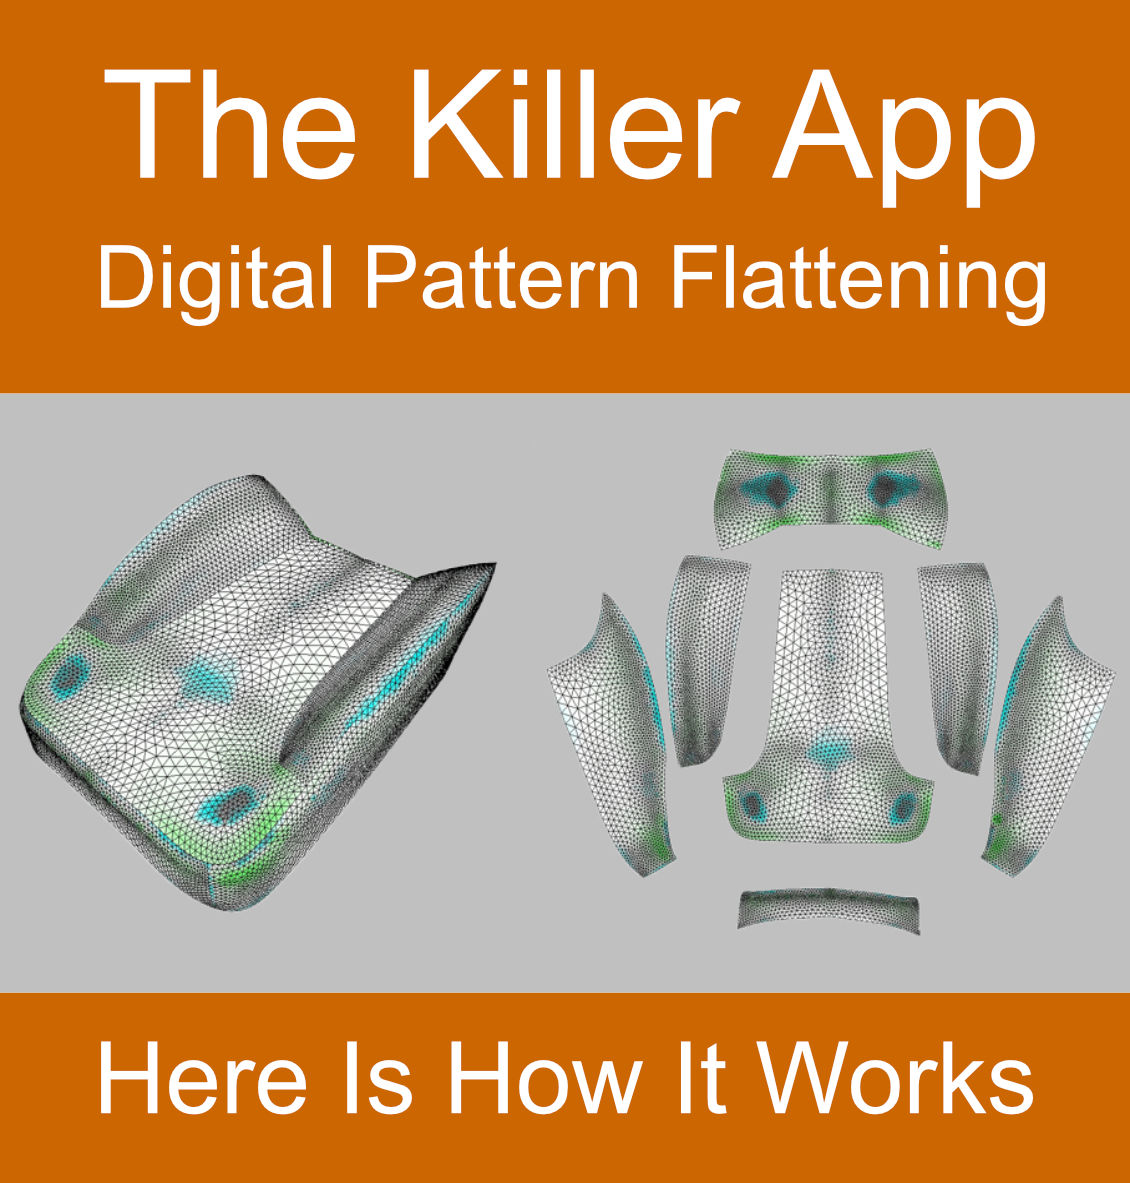 What is The Digital Patterning Killer App? 500 iterations in 5